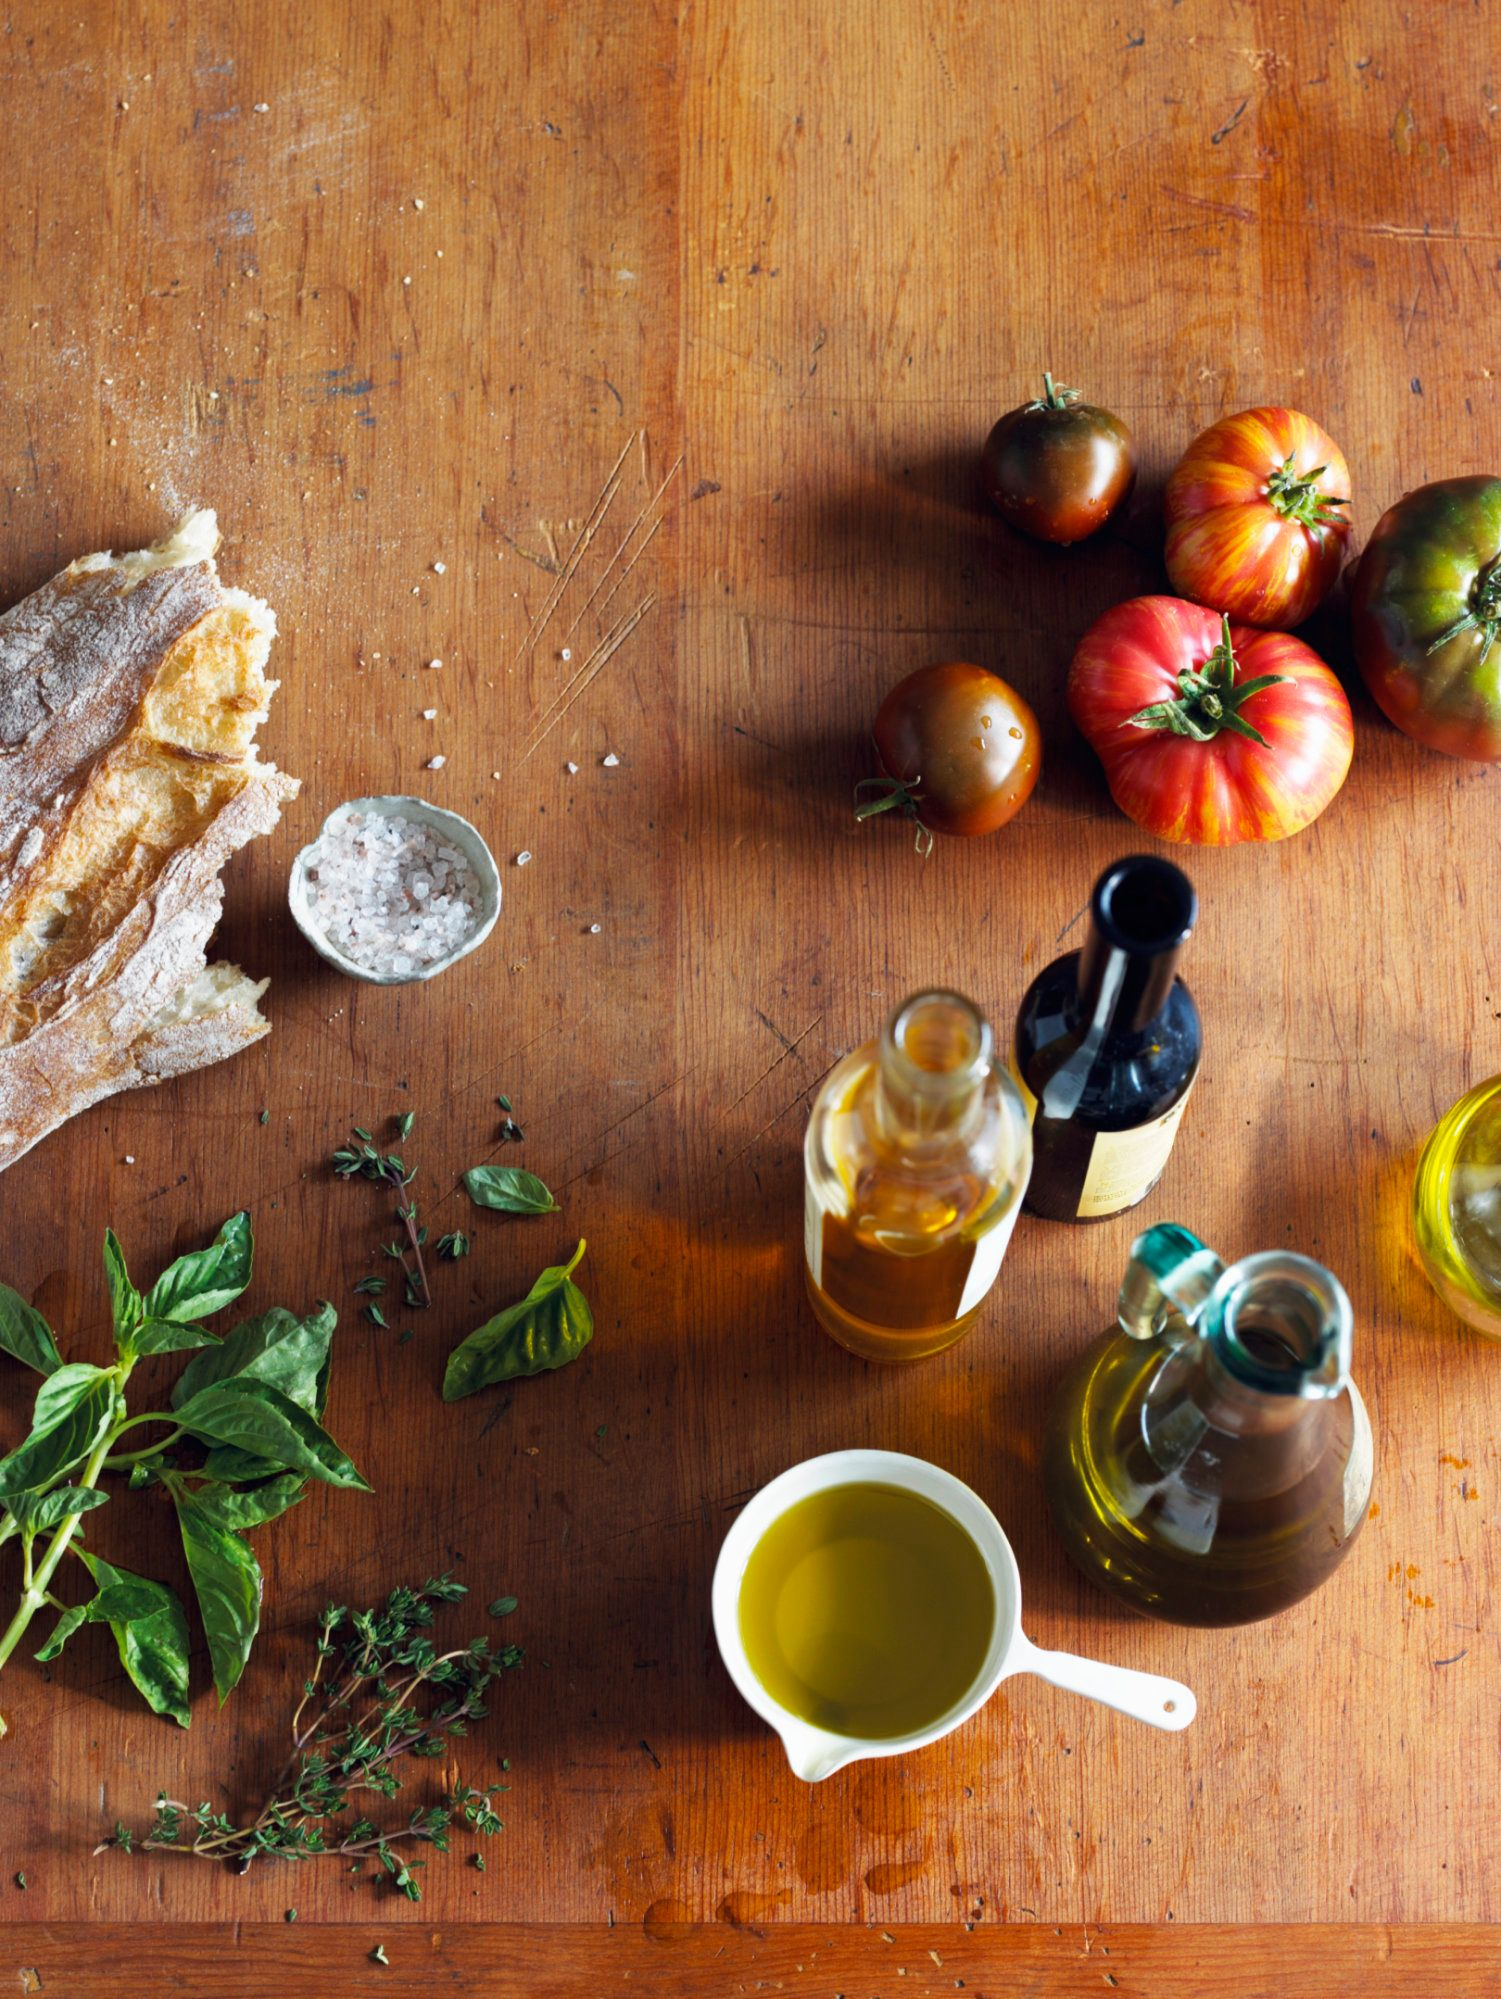 Italian cooking ingredients on a cutting board